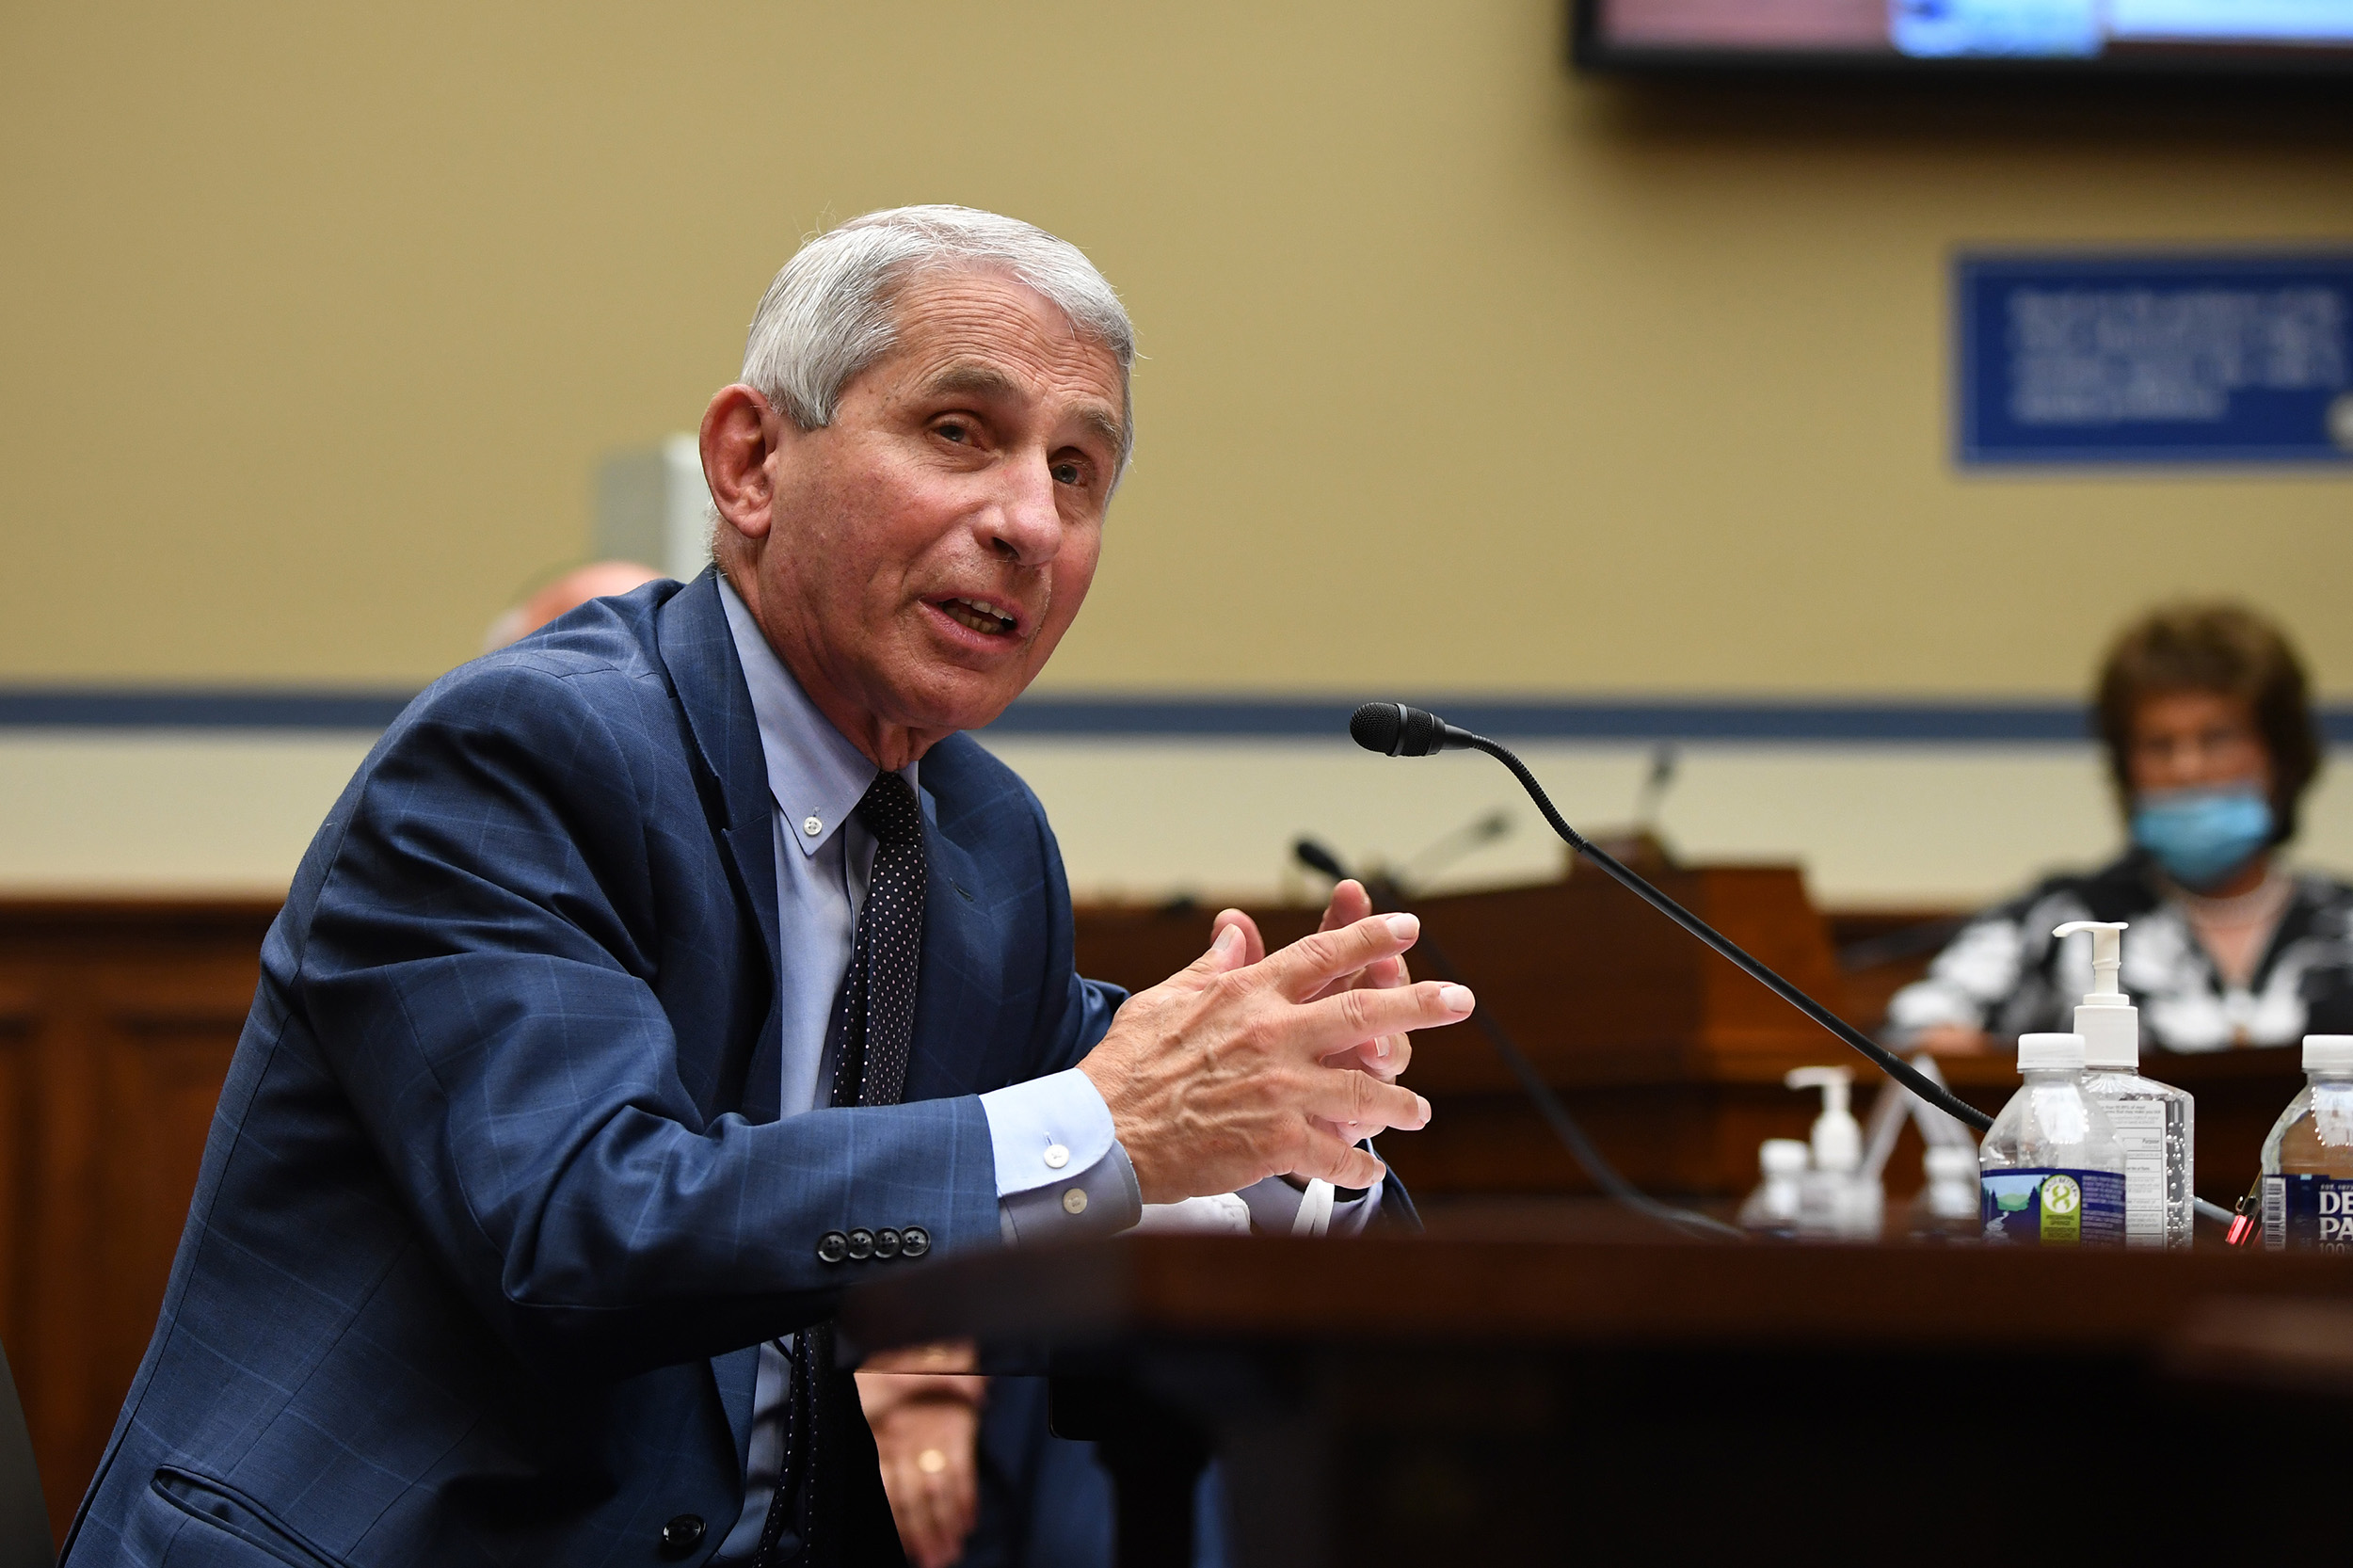 Dr. Anthony Fauci testifies during a House Subcommittee on a national plan to contain the Covid-19 pandemic, on Capitol Hill in Washington, DC on July 31.